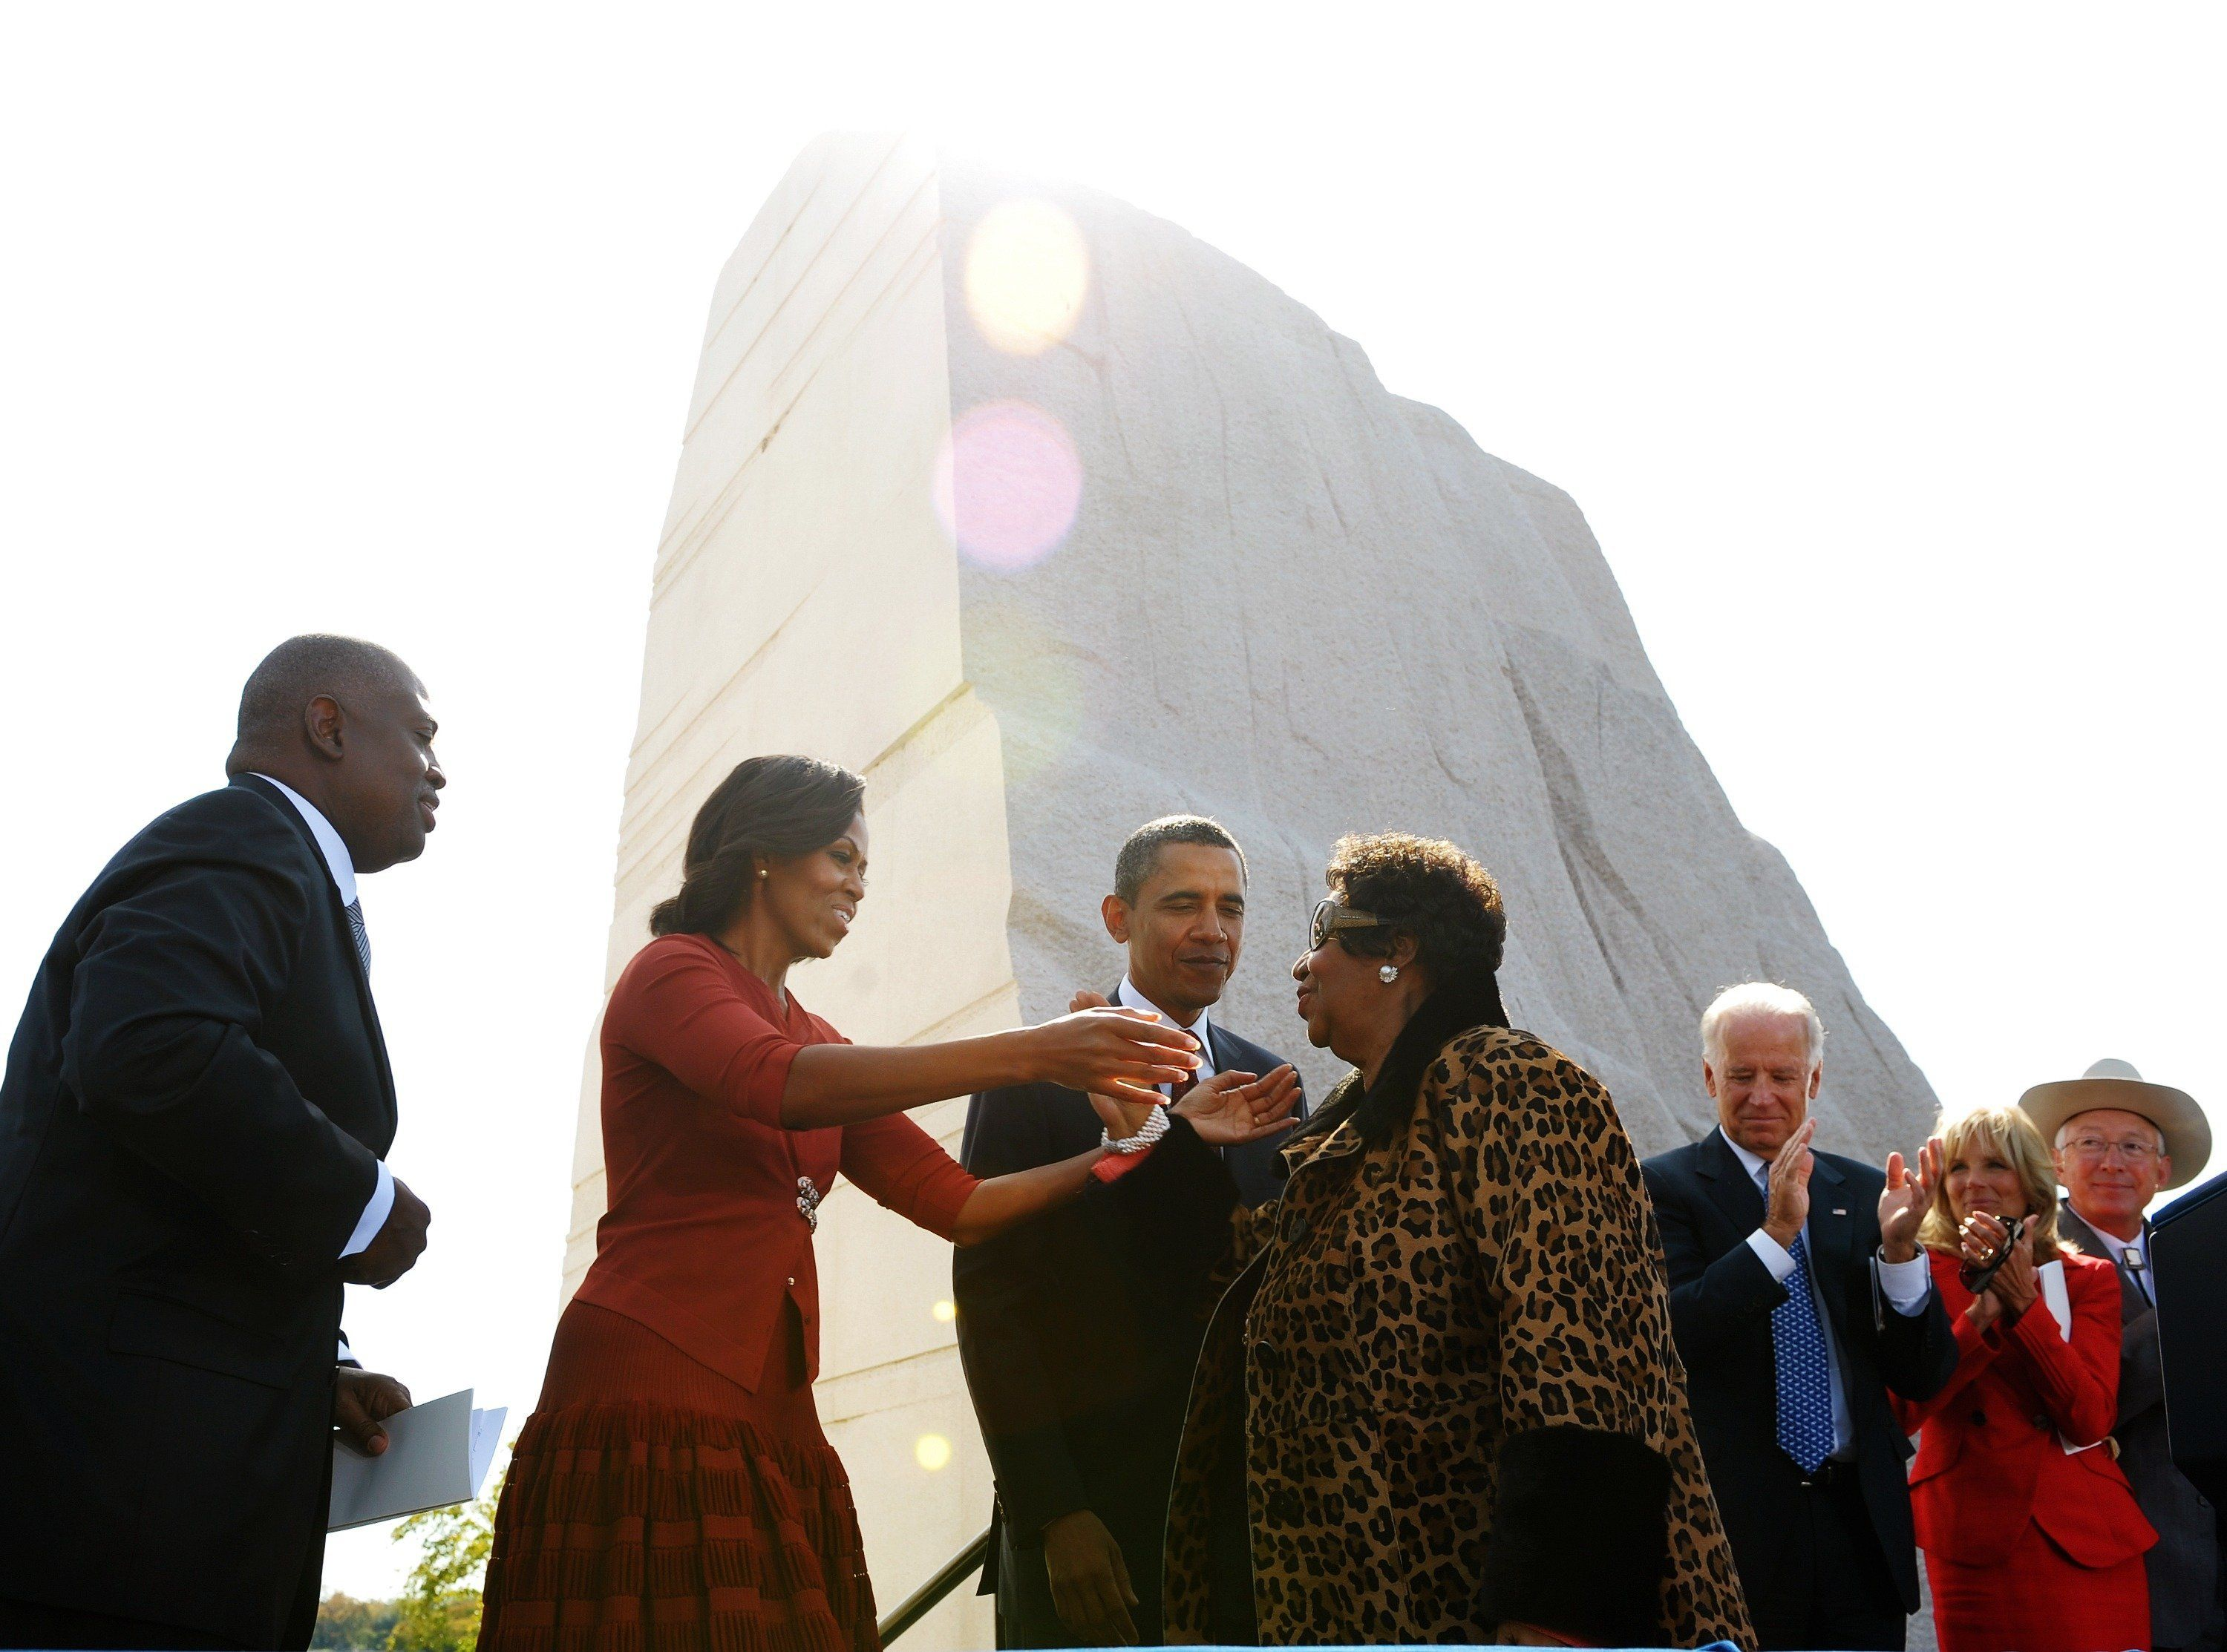 First Lady Michelle Obama reaches out to embrace Aretha Franklin as President and CEO of the Martin Luther King, Jr. National Memorial Project Foundation Harry Johnson (L), US President Barack Obama , Vice President Joe Biden (3rd R), Biden's wife Jill and Interior Secretary Ken Salazar (R) look on after Franklin performed at the dedication of the Martin Luther King Jr. Memorial October 16, 2011 in Washington, DC. AFP PHOTO/Mandel NGAN (Photo credit should read MANDEL NGAN/AFP/Getty Images)